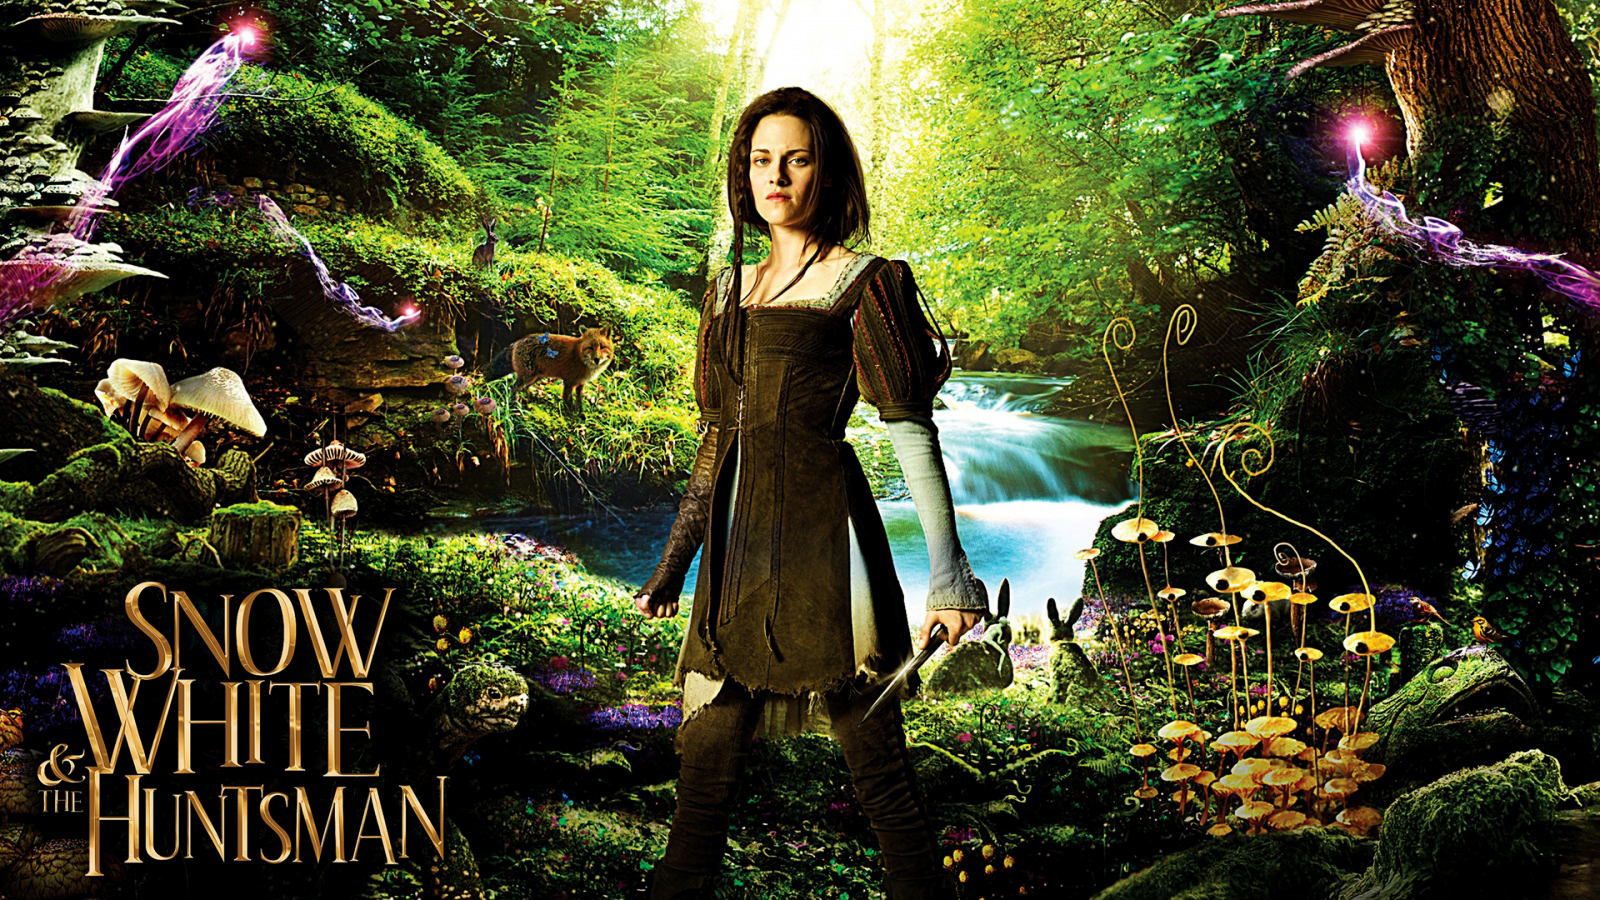 Wandposter Wald Central Wallpaper Snow White And The Huntman Poster Hd Wallpapers